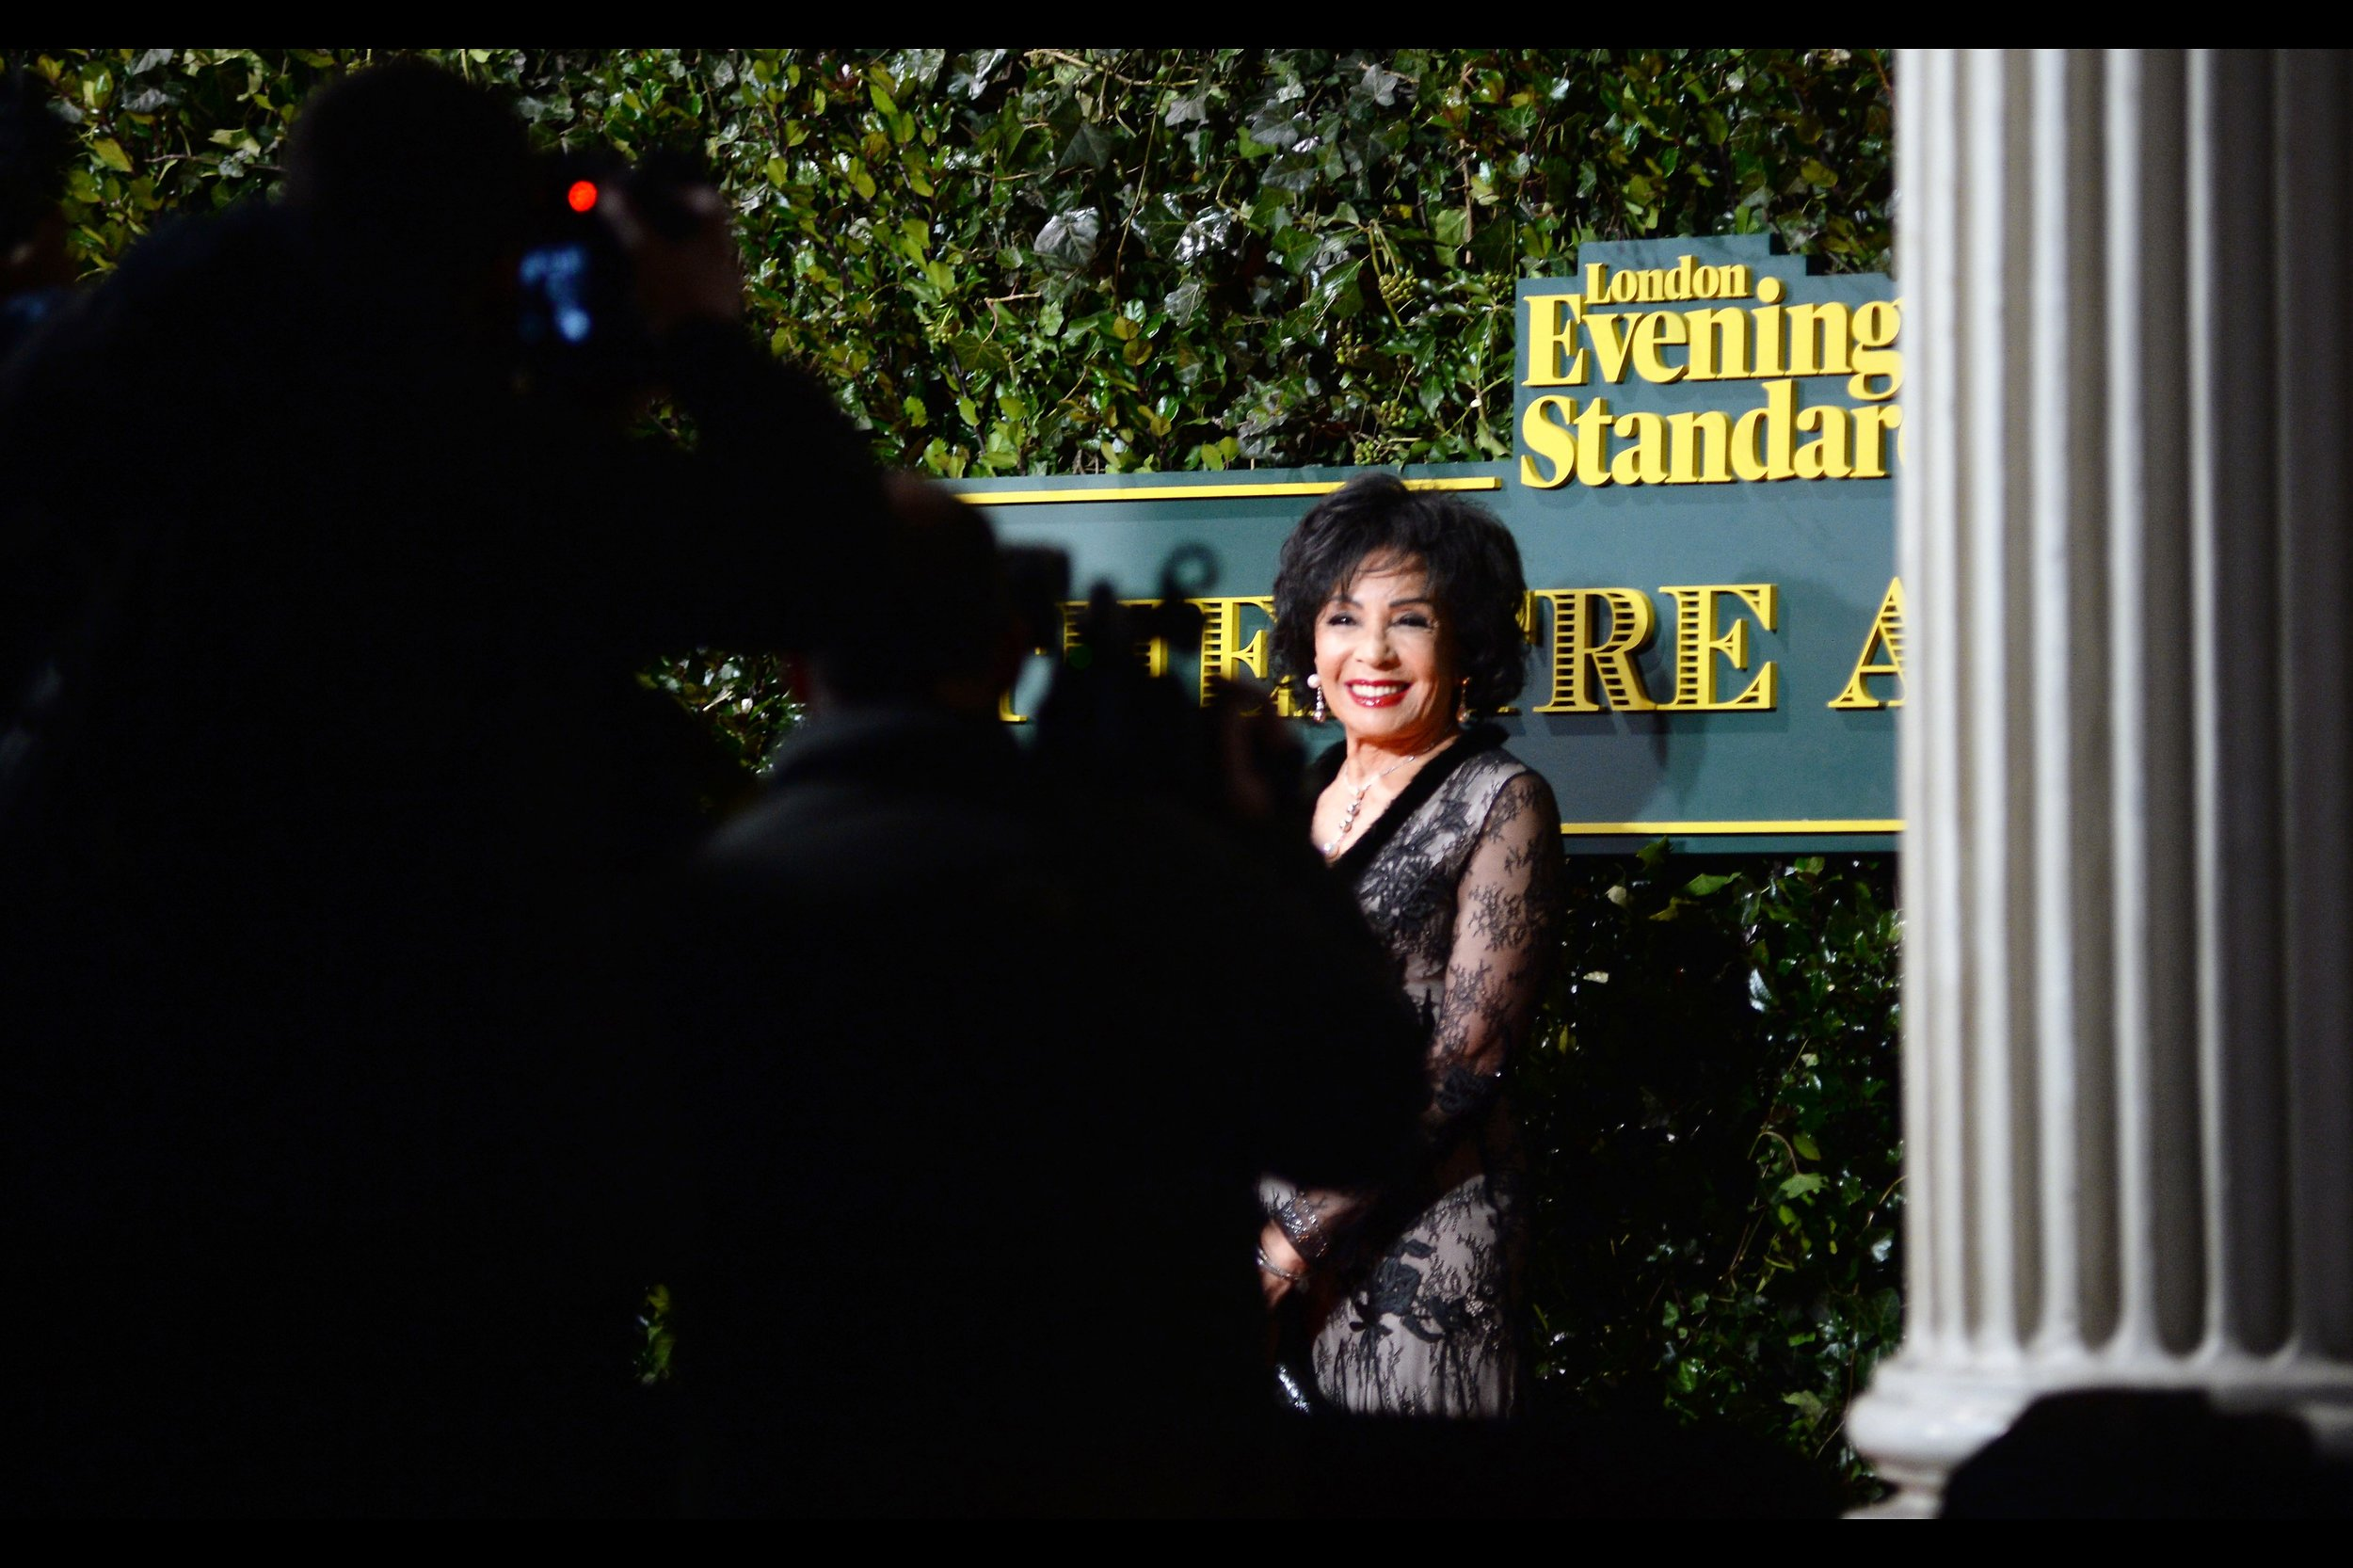 """""""At this stage I'd prefer to lip-sync them, but overall I still think they're great tunes""""  - Dame Shirley Bassey sang the themes to several James Bond films, including Goldfinger and Diamonds Are Forever."""